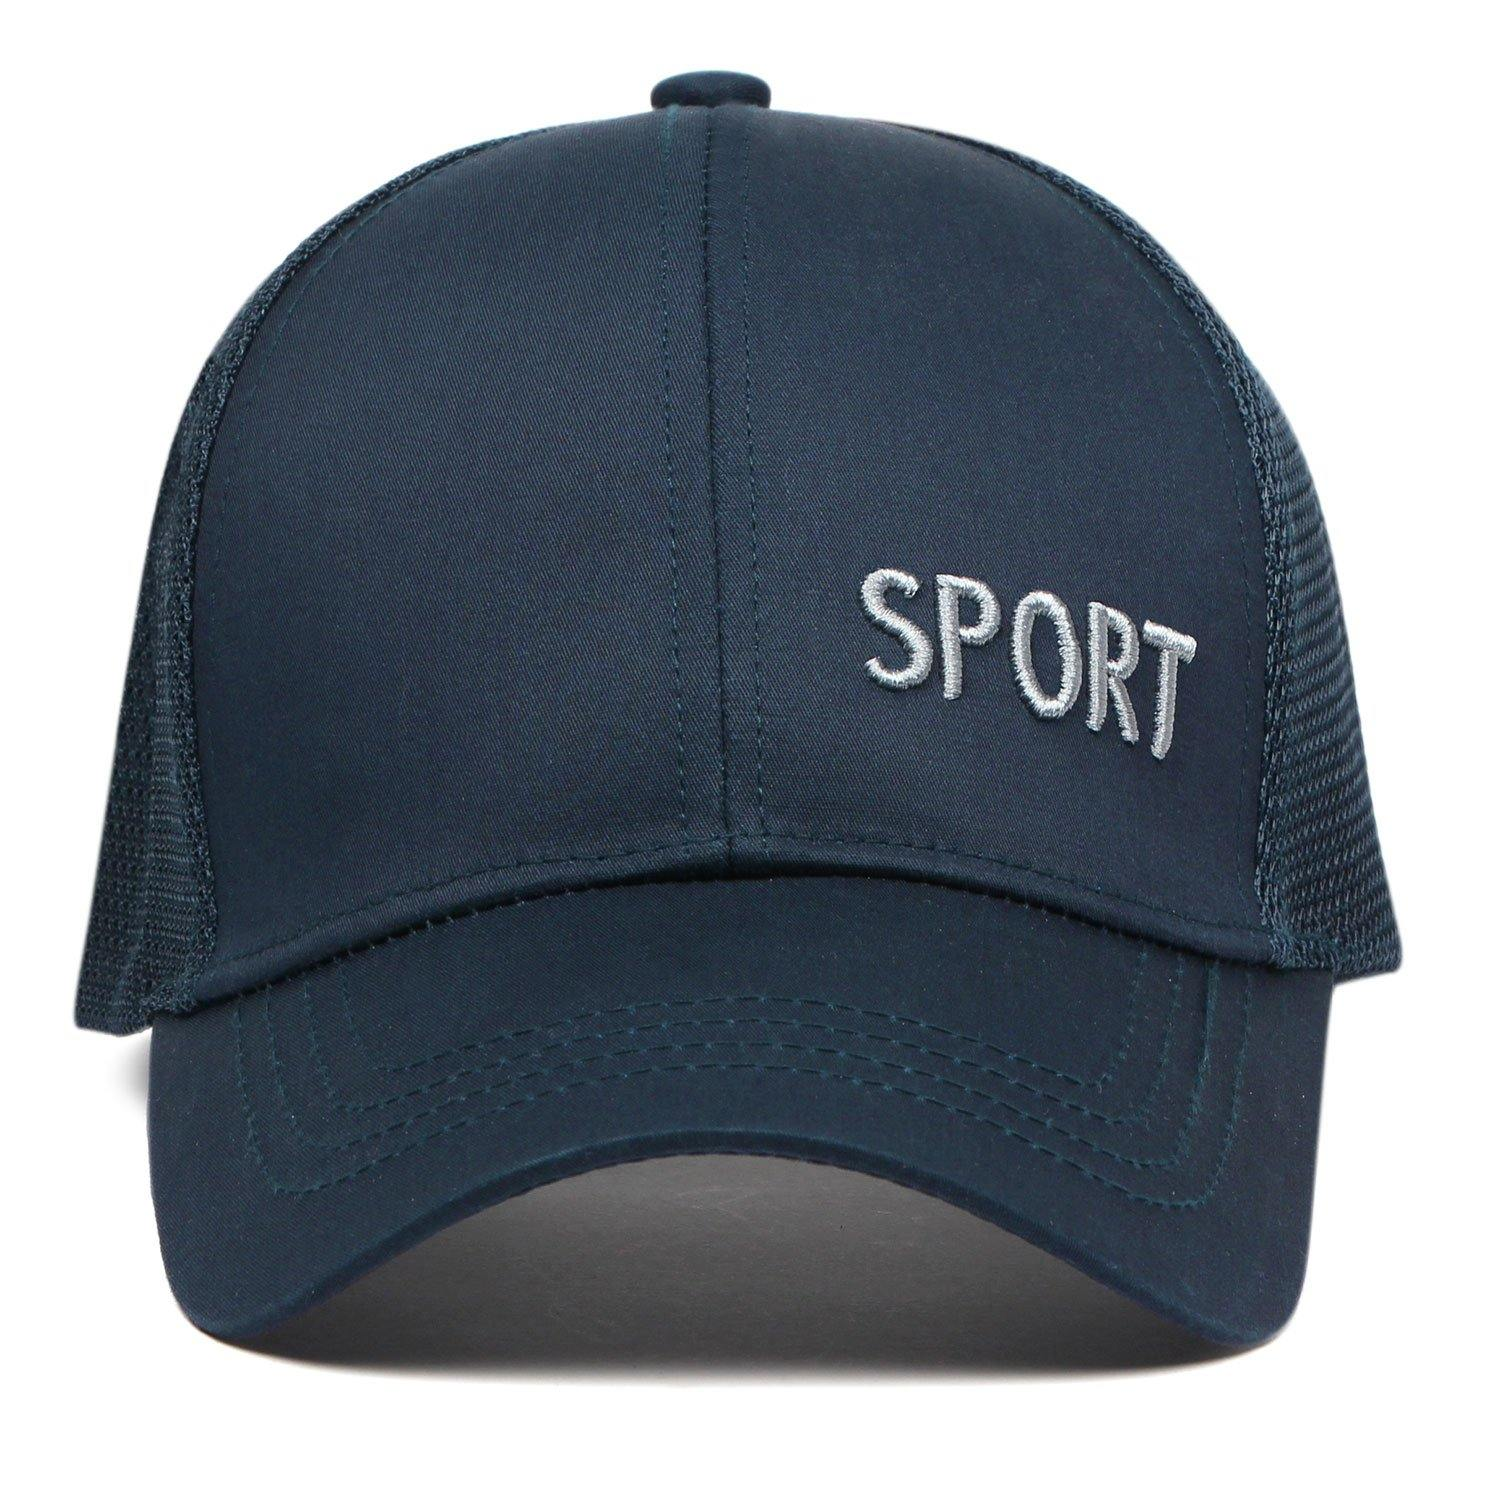 Plain Cotton Adjustable Summer Sports Cap for Men - Navy - Bonjour Group